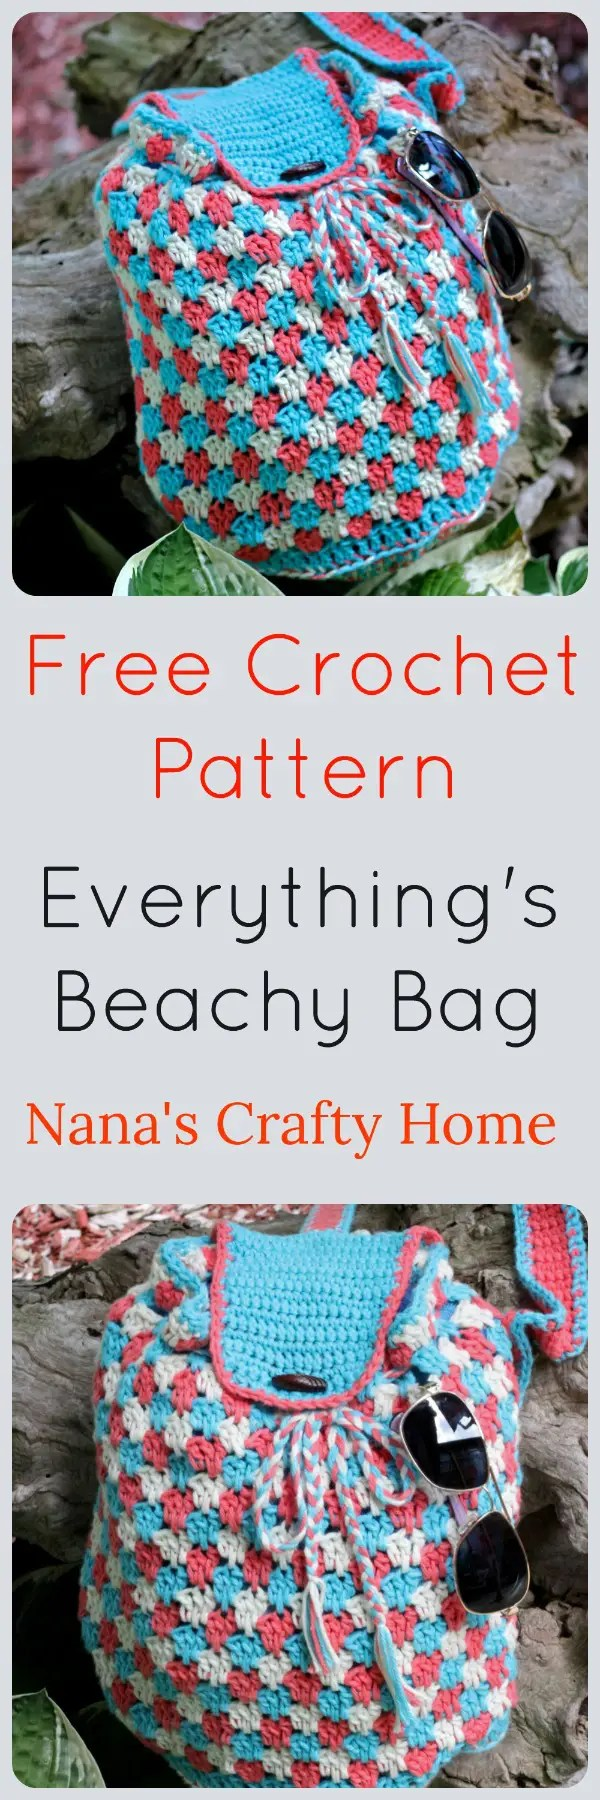 Everything\'s Beachy Bag Free Crochet Pattern a Crossbody Sling Bag